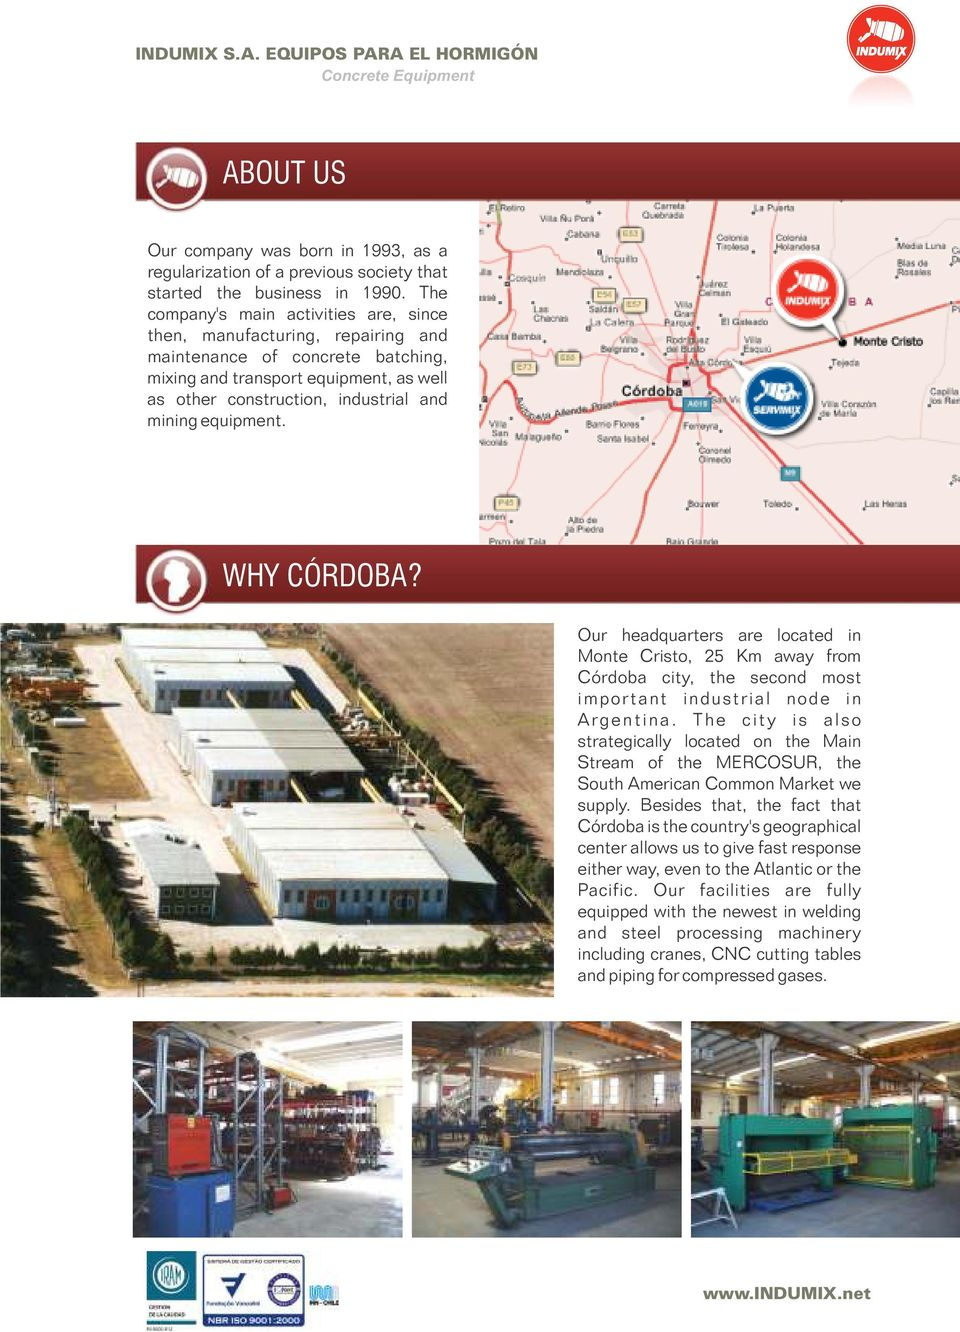 equipment. WHY CÓRDOBA? Our headquarters are located in Monte Cristo, 25 Km away from Córdoba city, the second most important industrial node in Argentina.